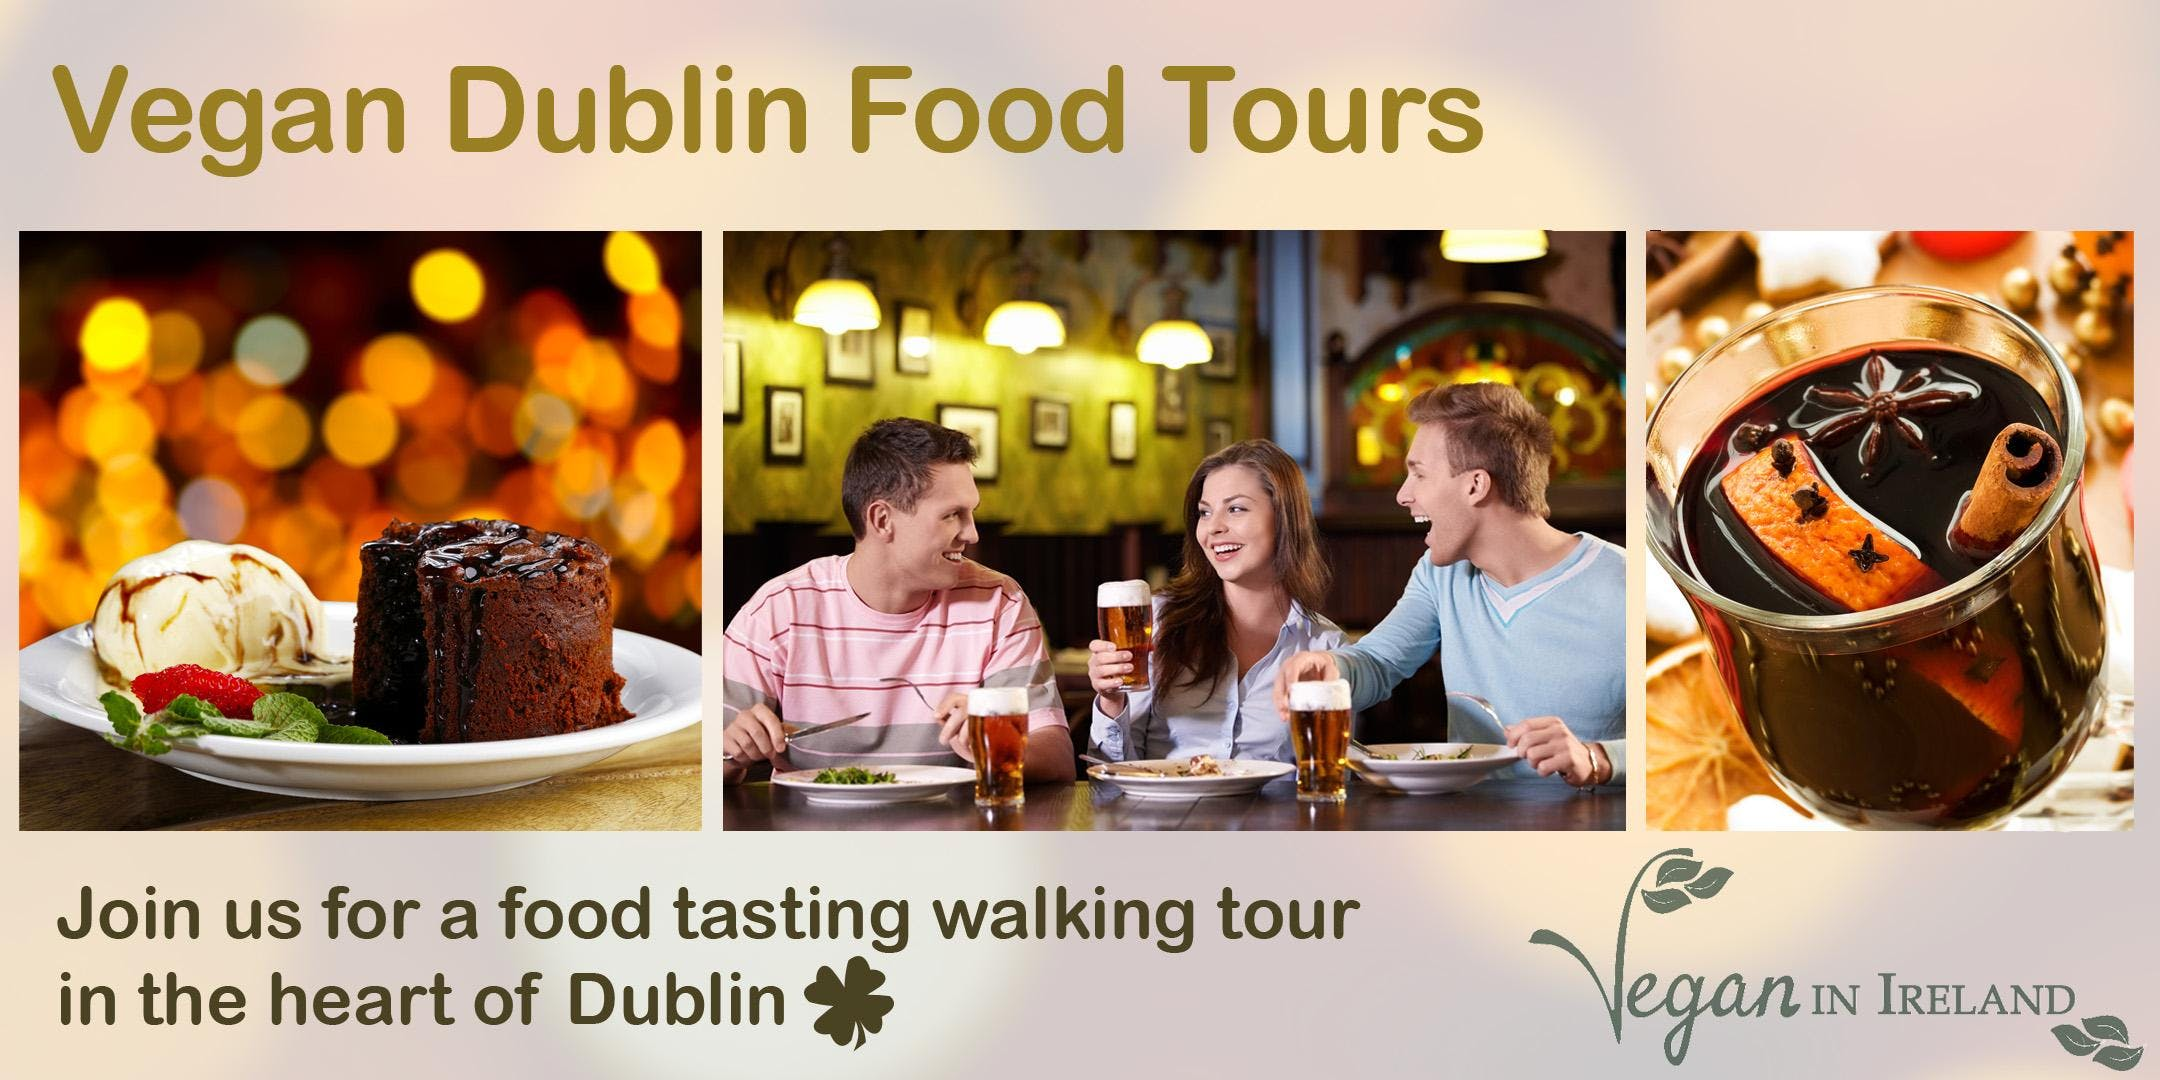 Vegan Dublin Food Tour: A Unique Culinary Experience in the Heart of Dublin